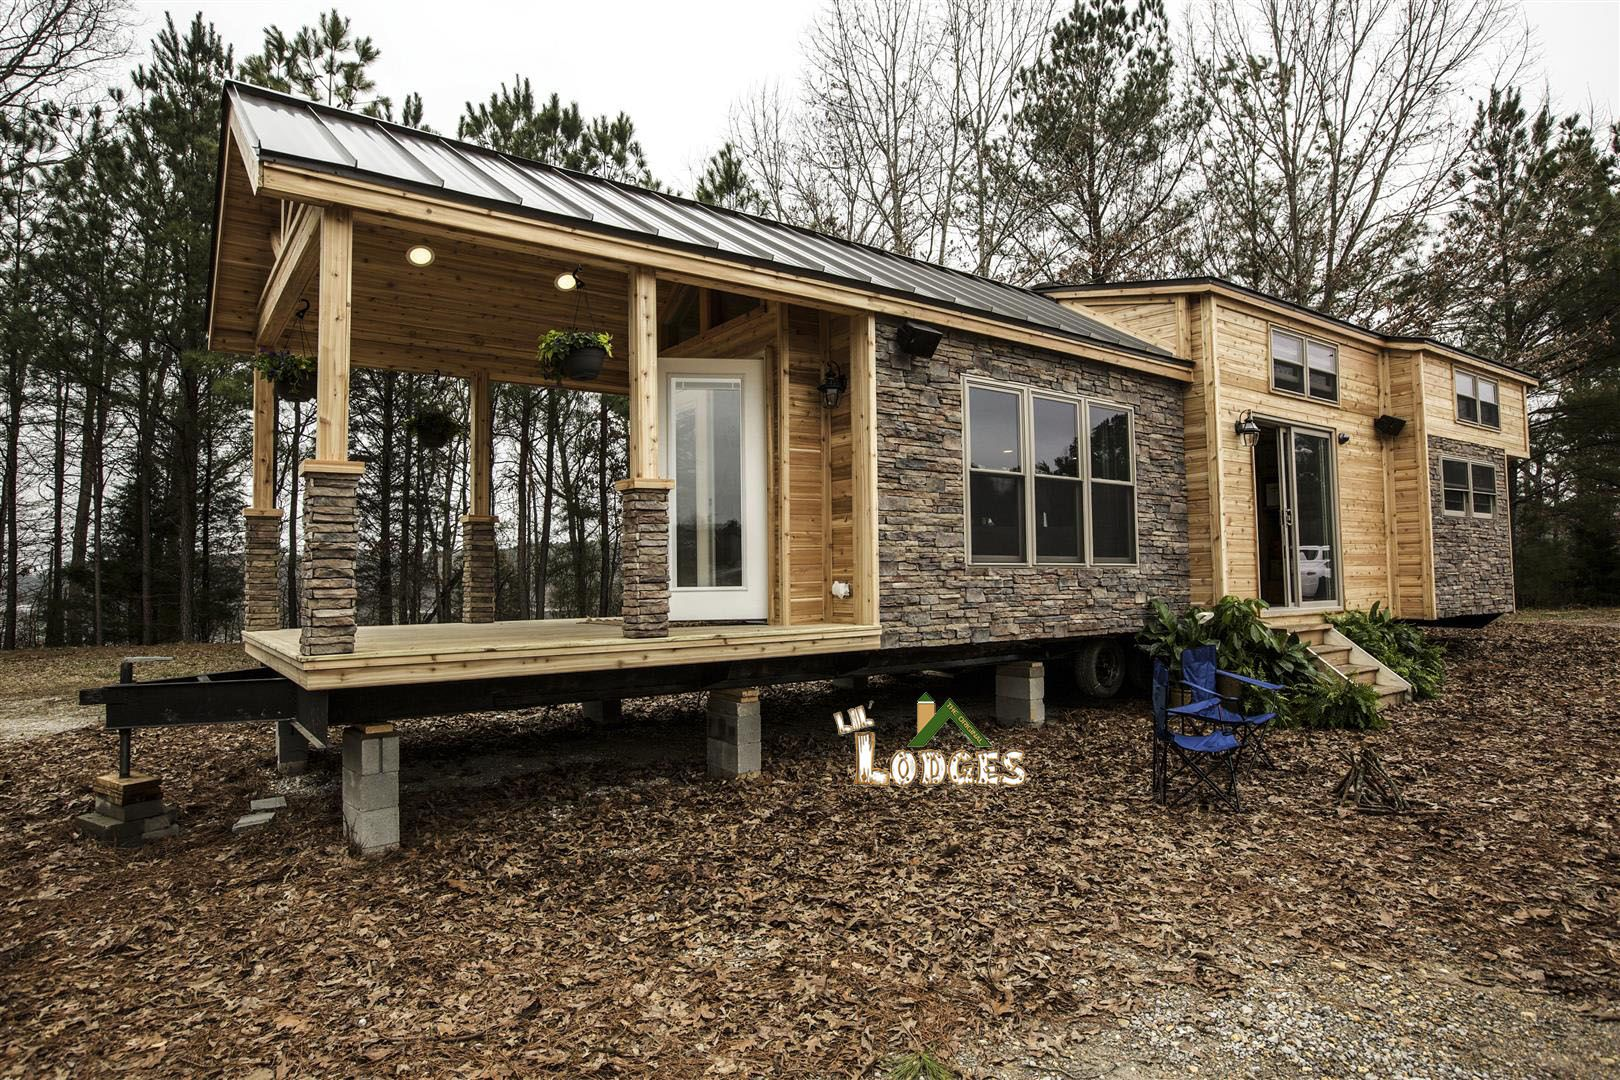 17 Best images about Tiny Homes on Pinterest Tiny homes on